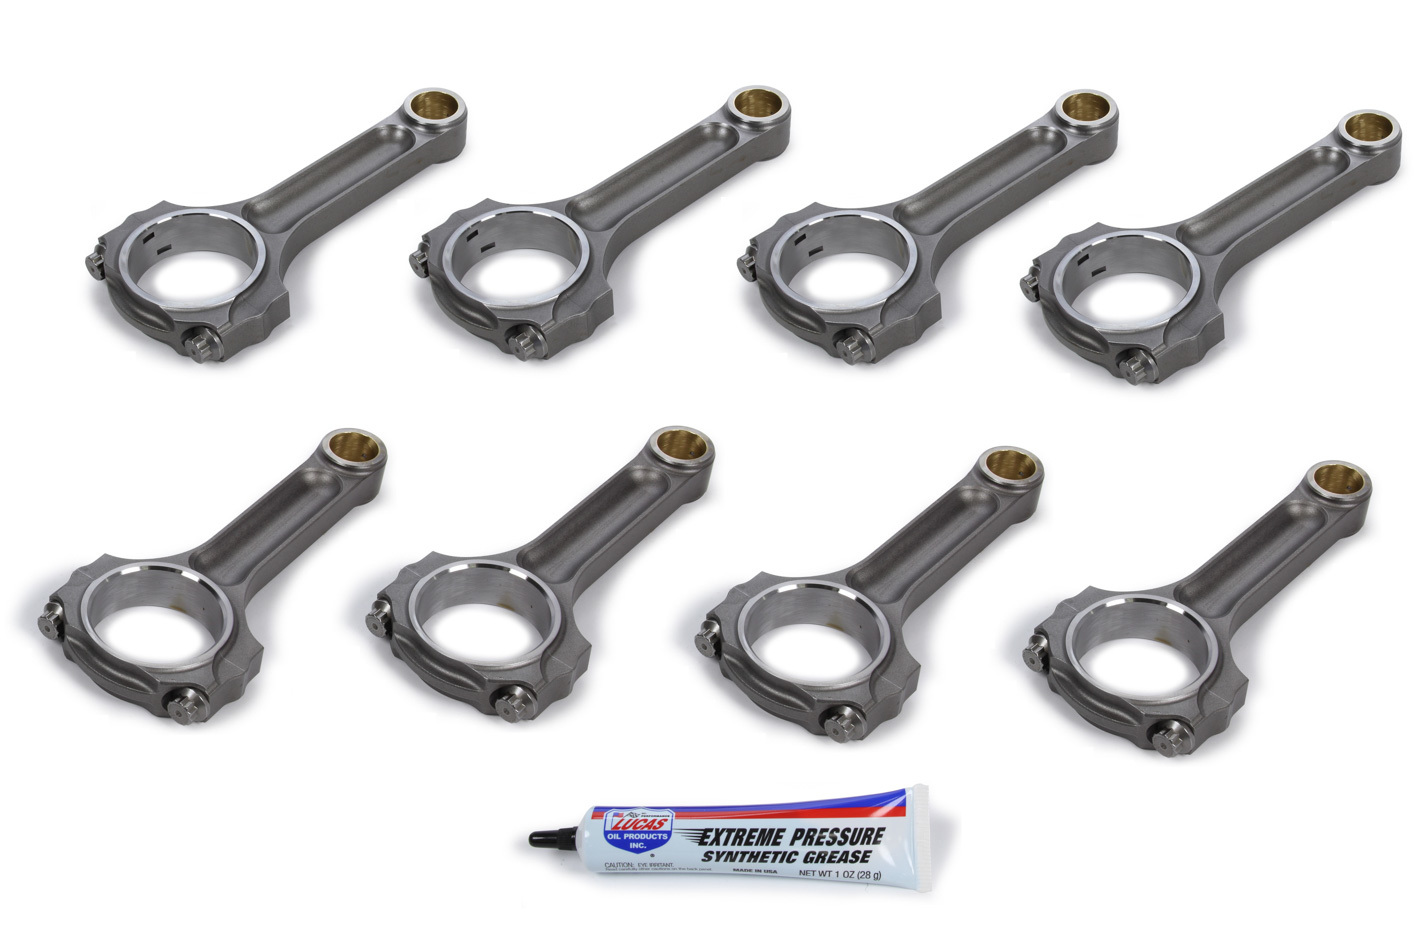 Oliver Rods L6125STSW8 Connecting Rod, Speedway, I Beam, 6.125 in Long, Bushed, 7/16 in Cap Screws, Forged Steel, GM LS-Series, Set of 8